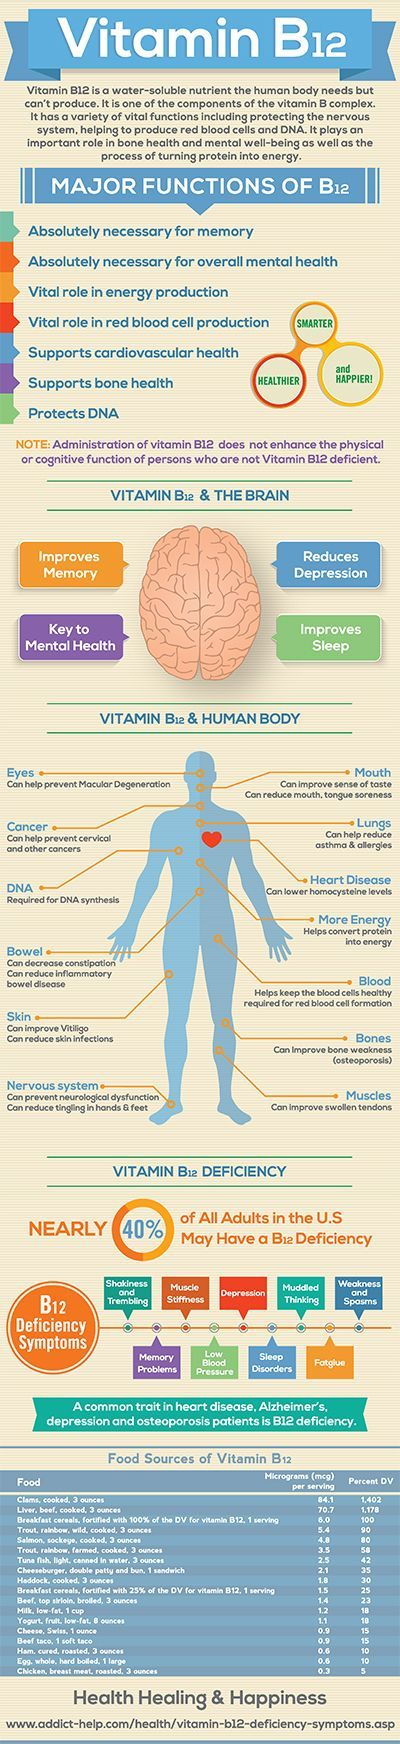 Vitamin B12 is essential to mental health & memory. It plays an important role in producing energy and blood. #vitamins #F4F #instafollow